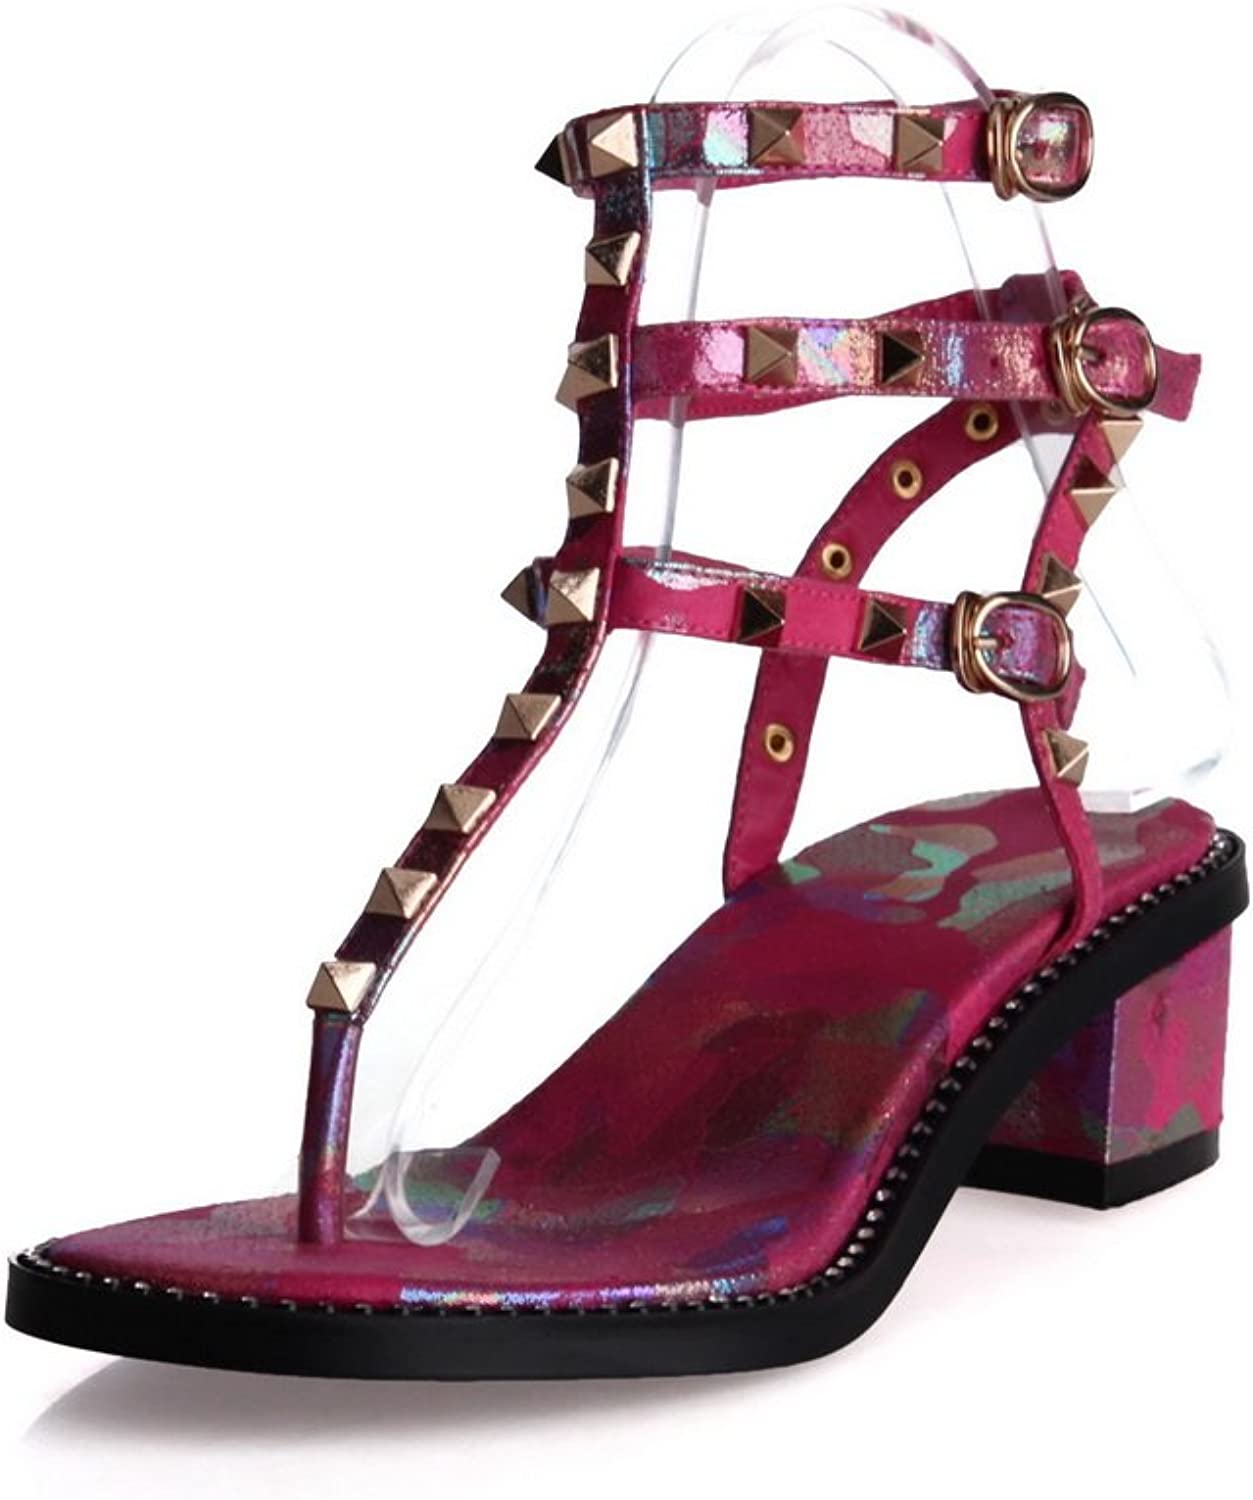 1TO9 Ladies Chunky Heels Studded Rivet Buckle Pink Cow Leather Sandals - 7.5 B(M) US